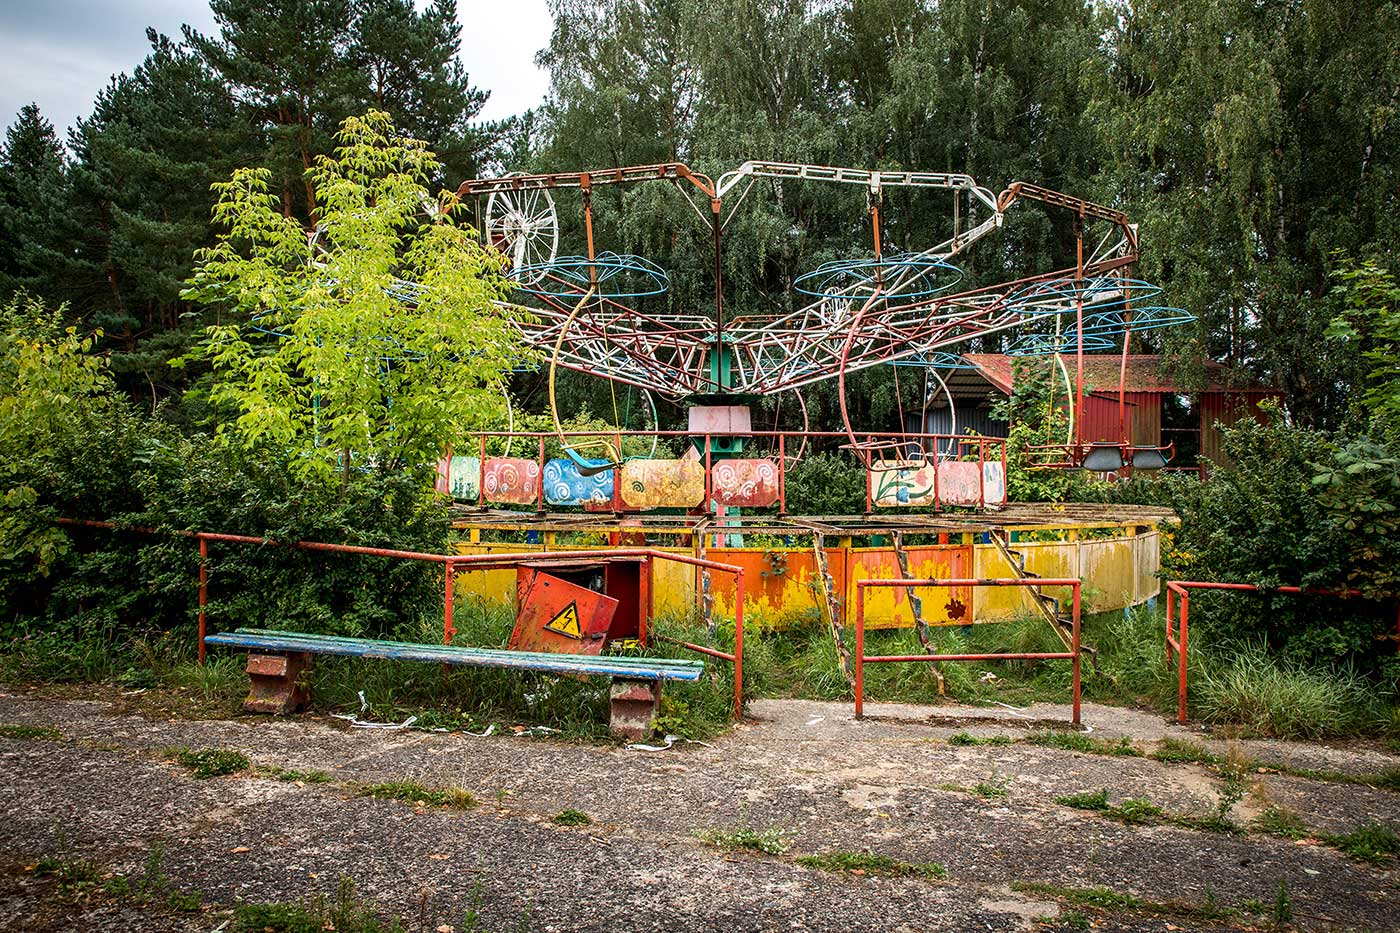 The park was called 'Children's World,' and was in operation from 1986 until 2013. Elektrėnai, Lithuania.